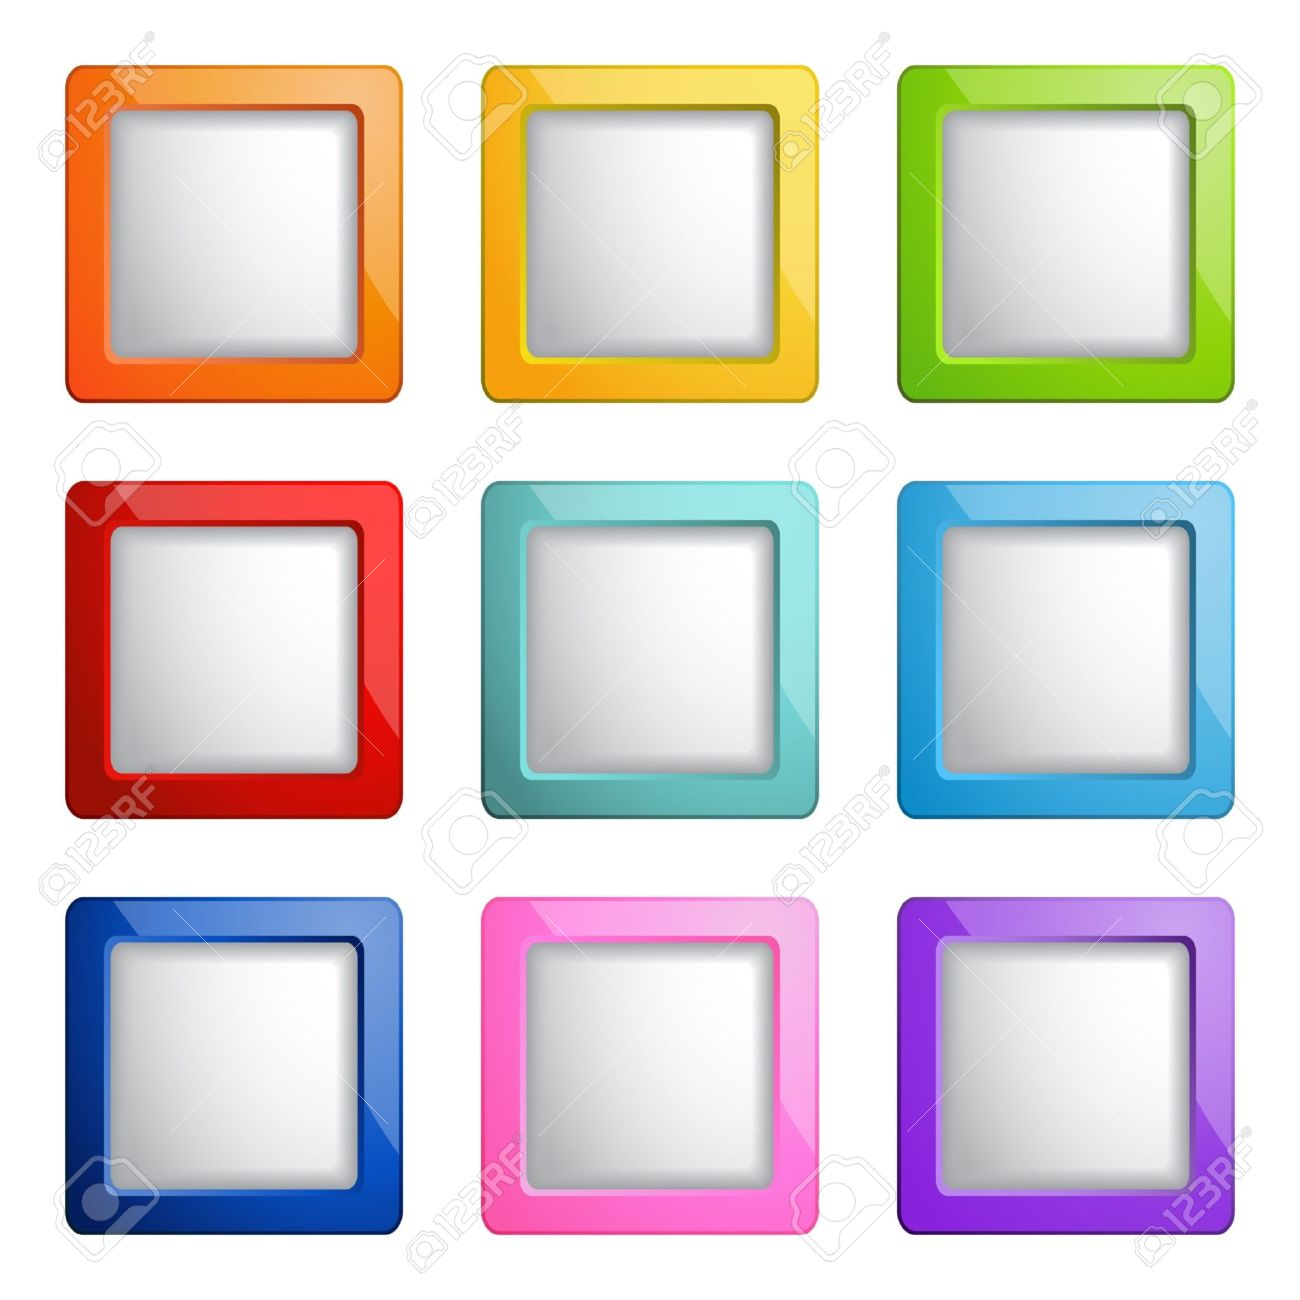 Set Of Square Web Buttons Royalty Free Cliparts Vectors And Stock